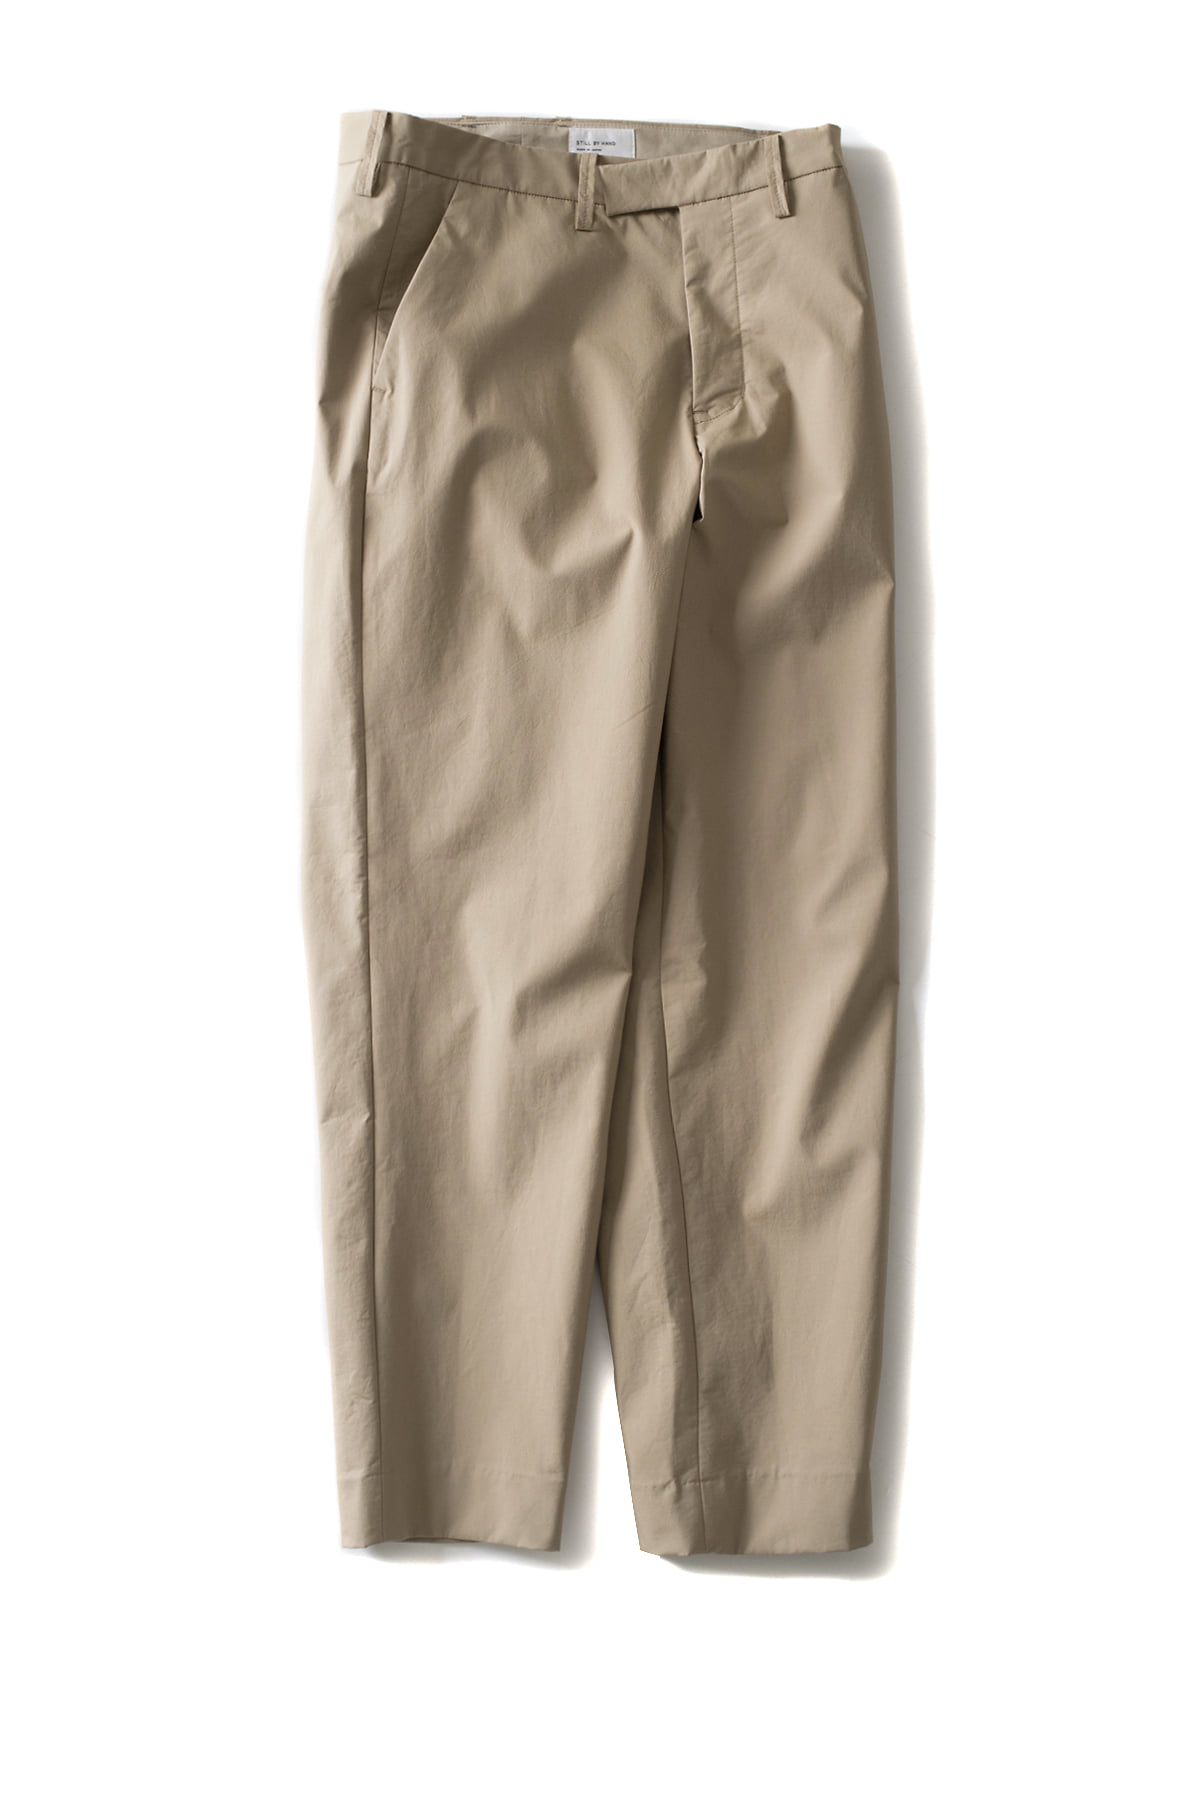 Still by Hand : Bonded Pants (Beige)